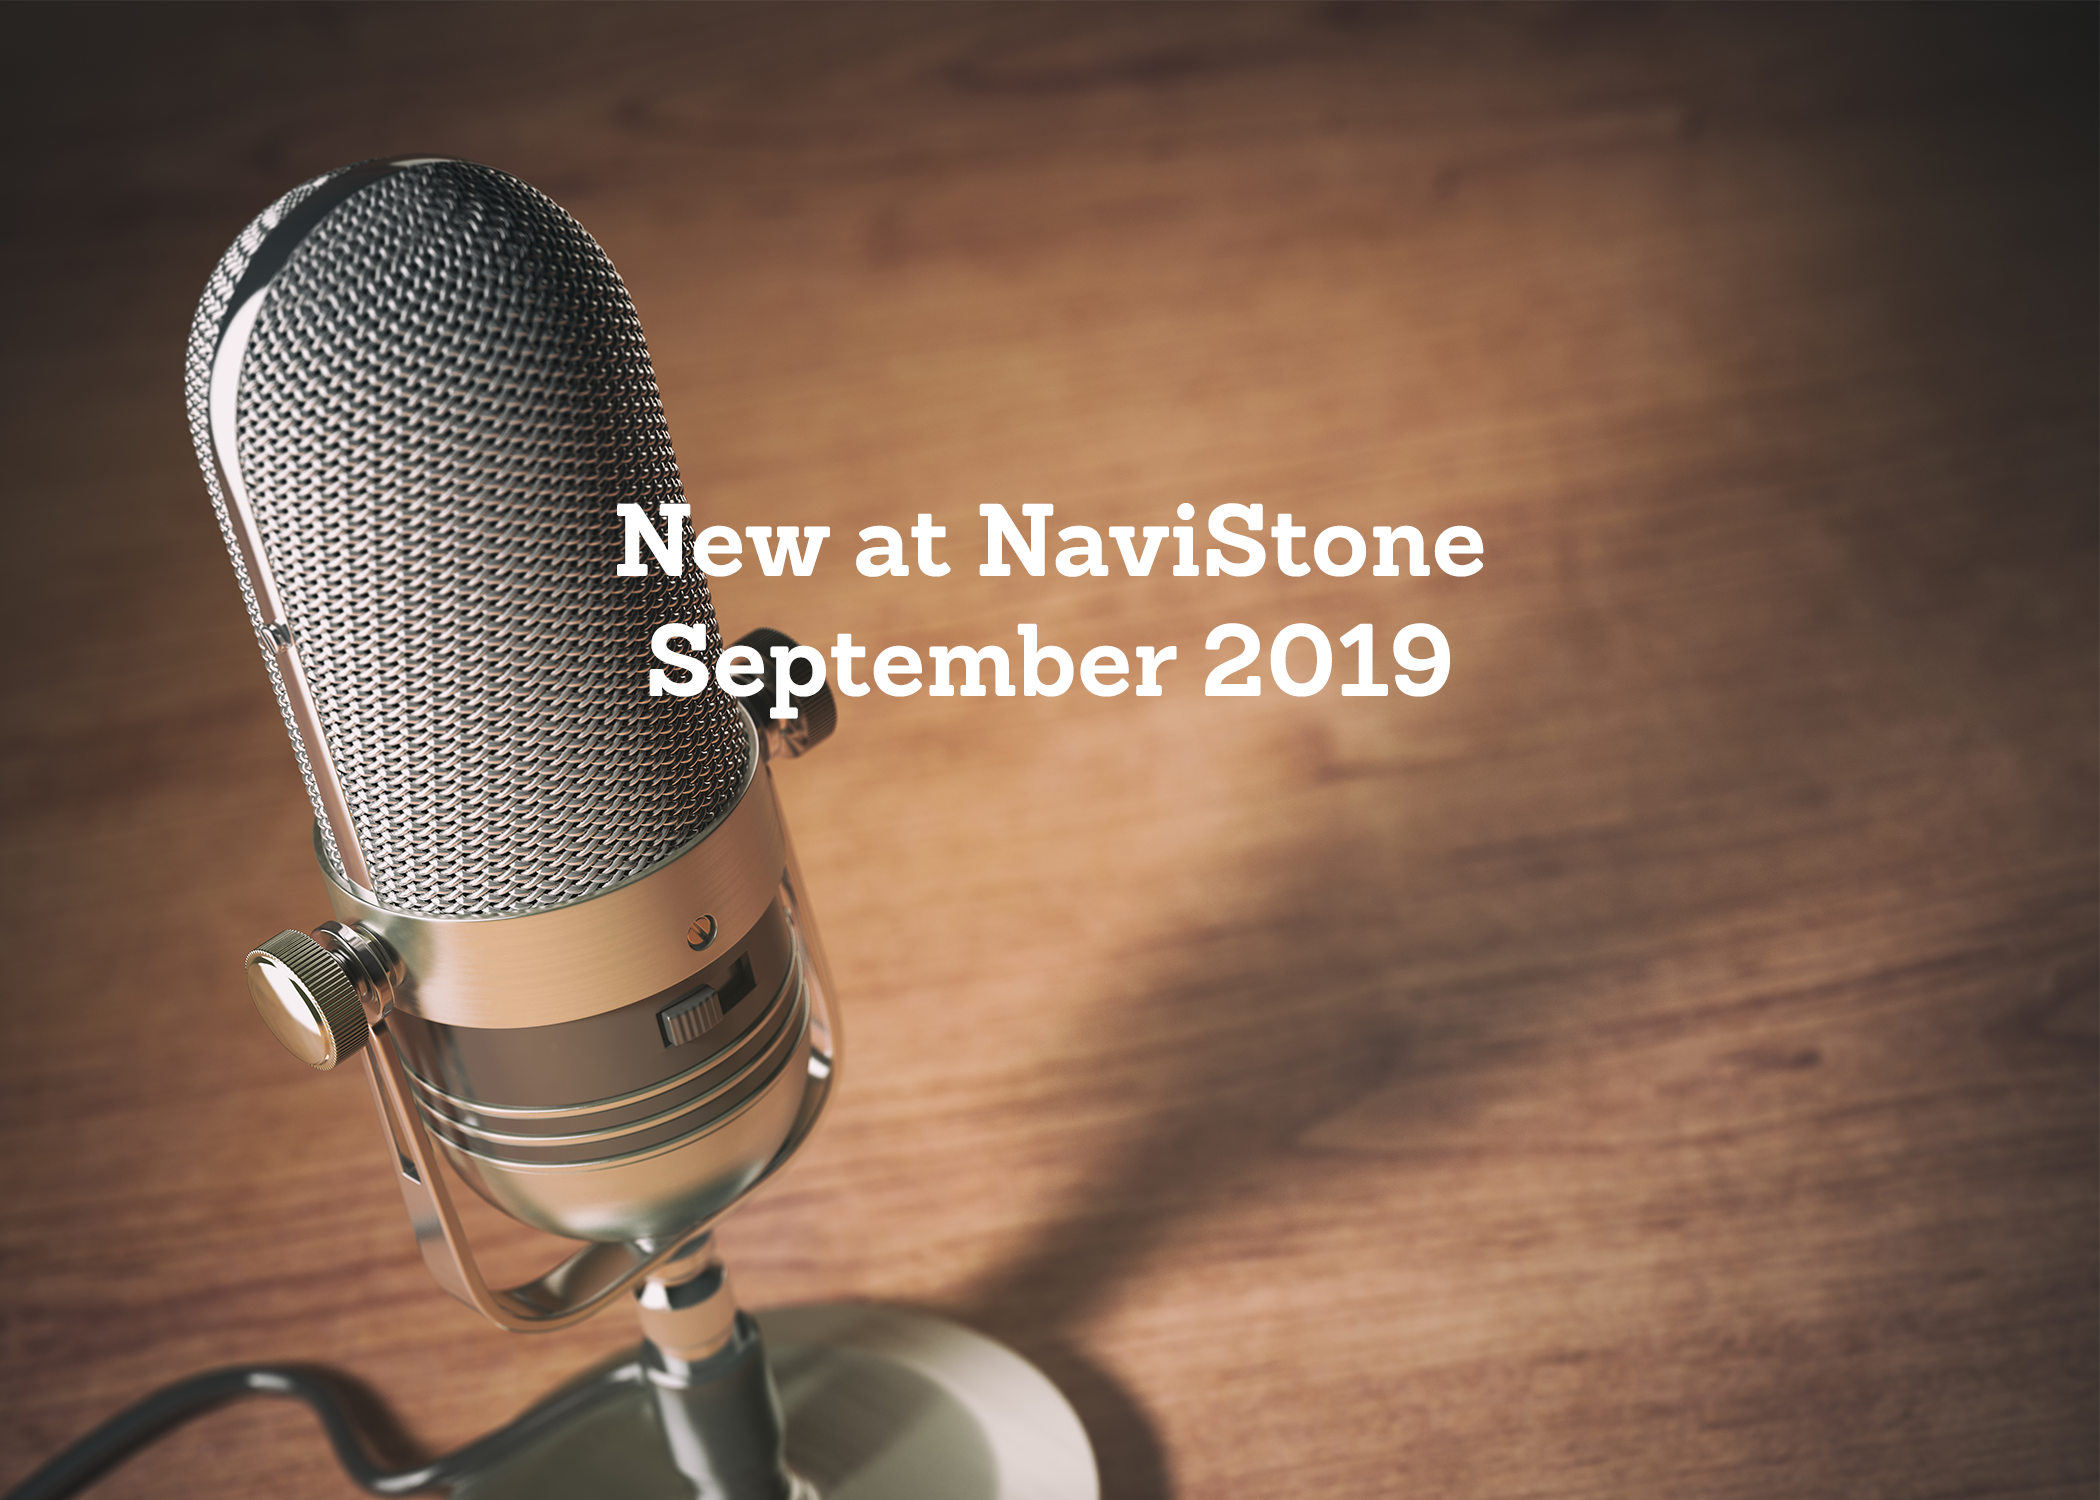 New at NaviStone September 2019